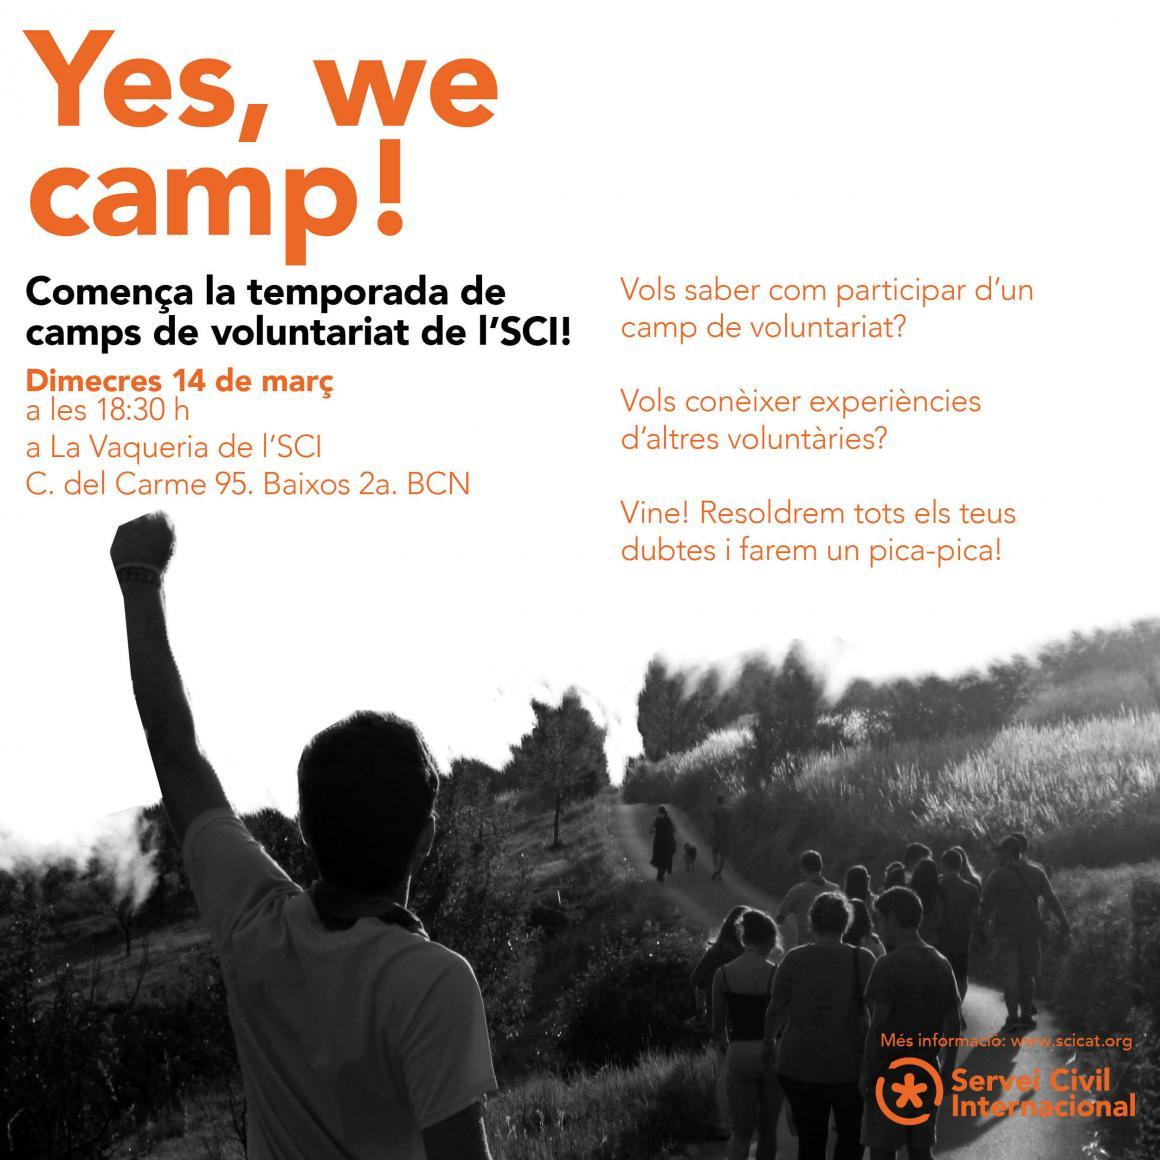 Yes, we camp!